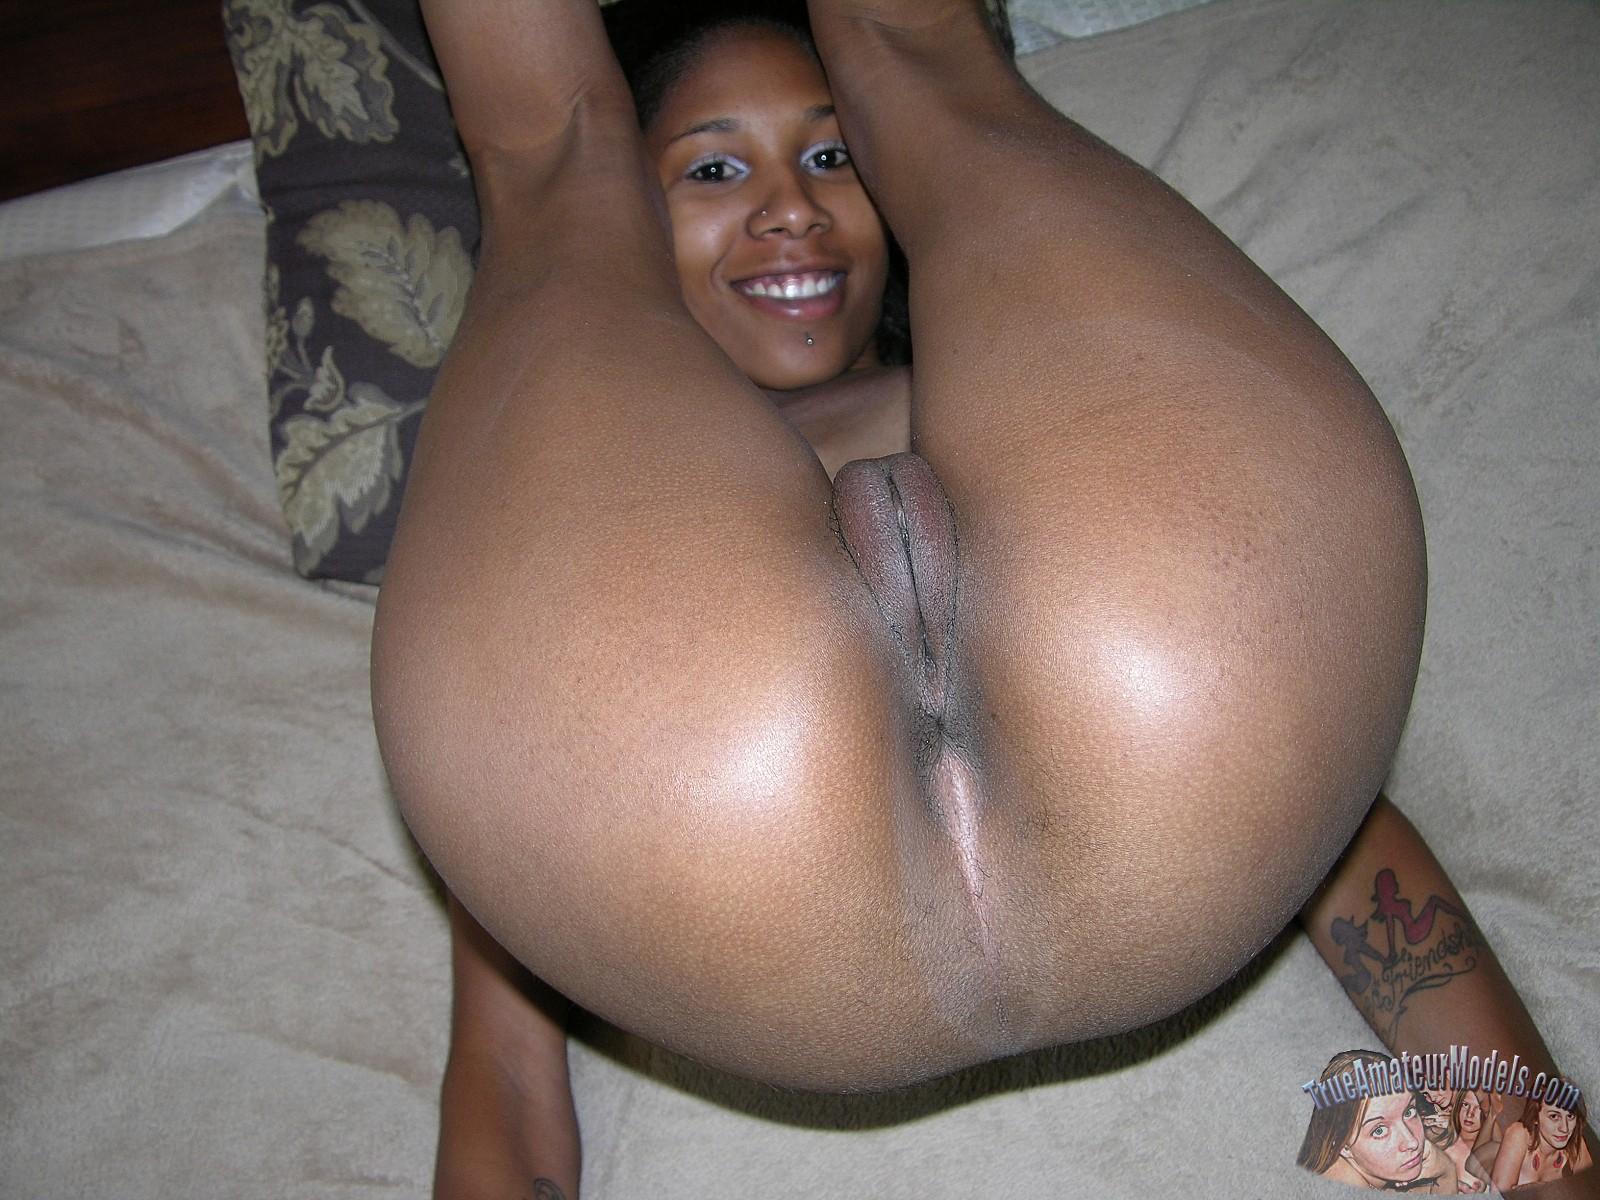 The amateur mature fucking black women opinion obvious